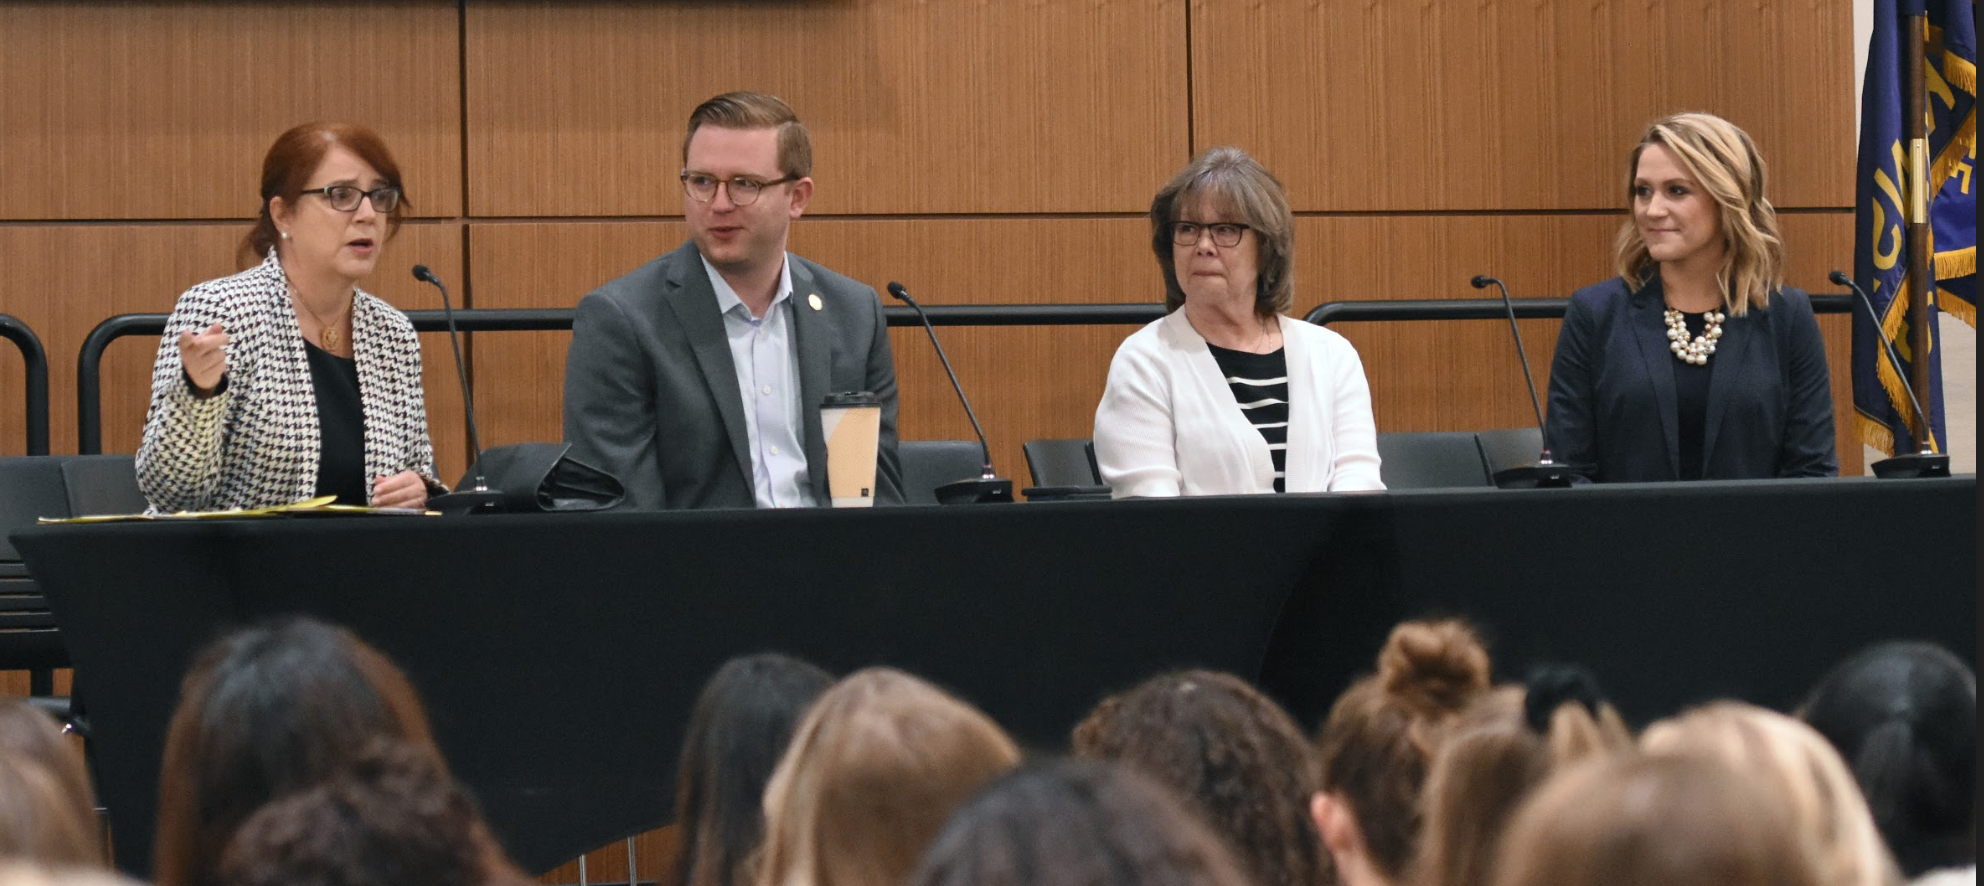 Legislative Career Panel. From left to right: Susan Estes, Precinct Committeewoman and State Chairwoman. Representative Brandon Woodard, Kansas House District #30. Barbara Conant, Lobbiest at Kansas Advocates for Better Care. Catherine Gunsalus Assistant Kansas Secretary of State.